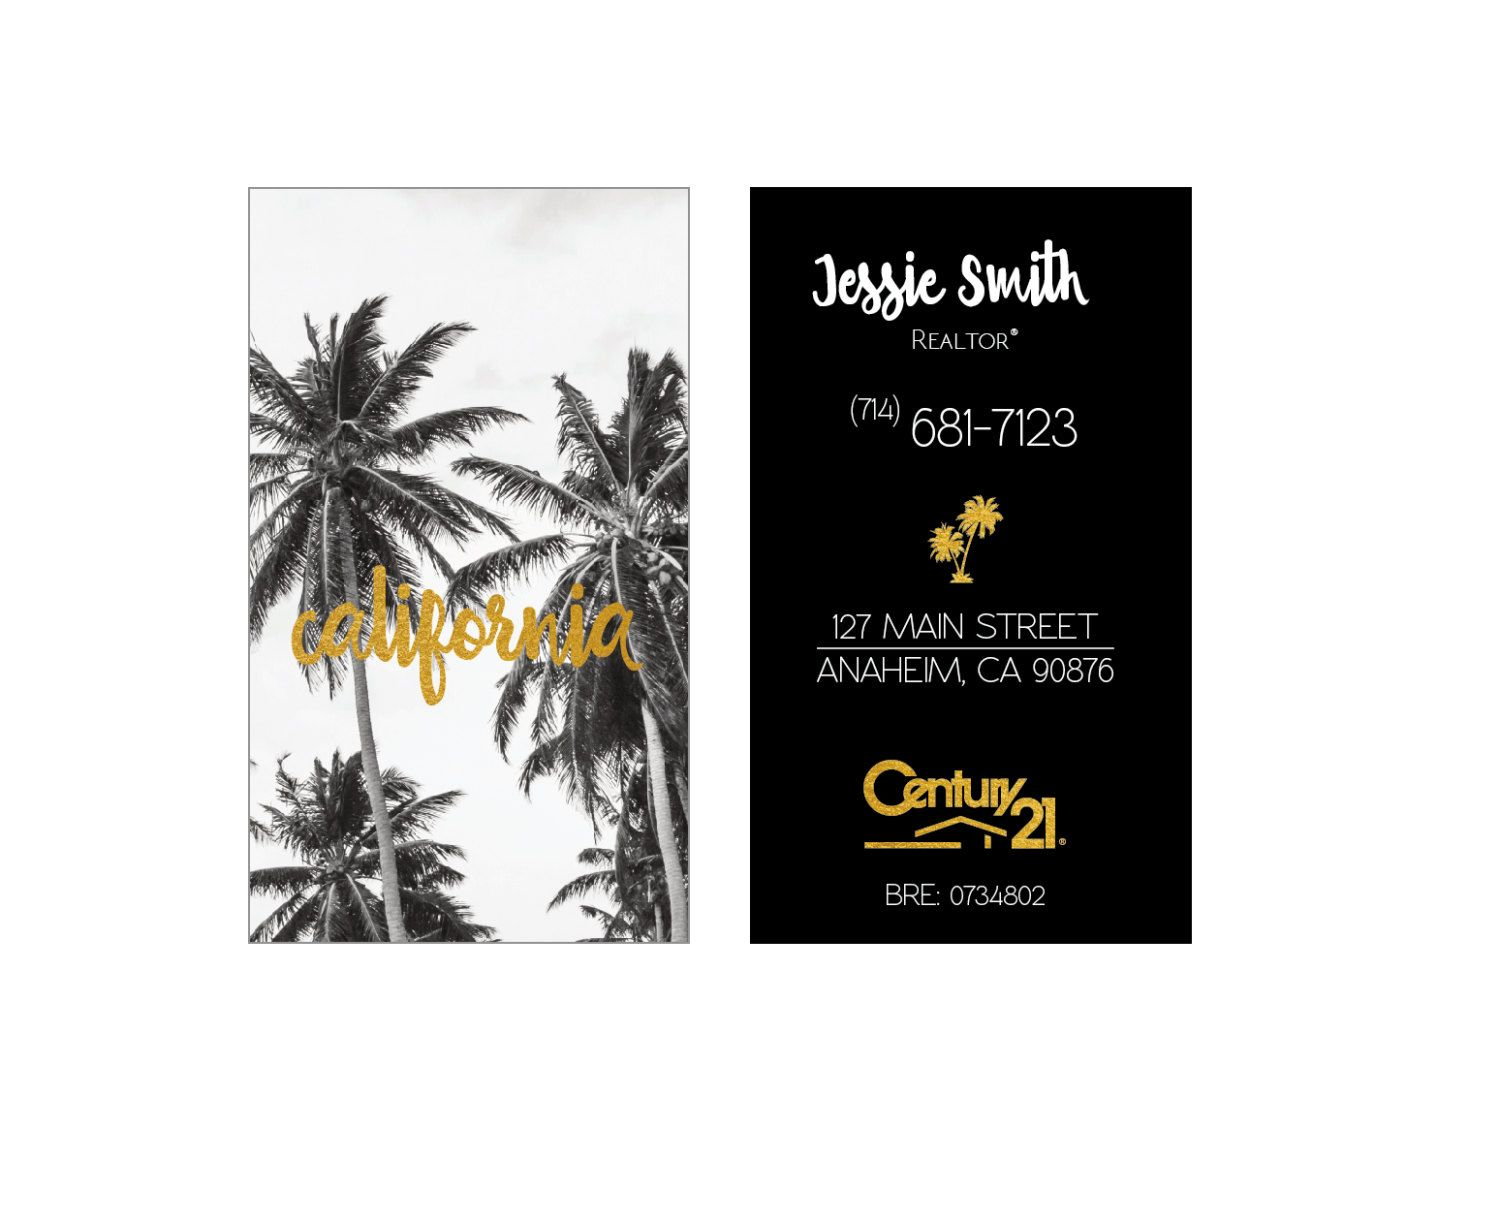 Realtor business cards california palm tree gold modern keller realtor business cards california palm tree gold modern keller williams gloss or matte color free ups shipping century 21 re max by realestatedesigns on colourmoves